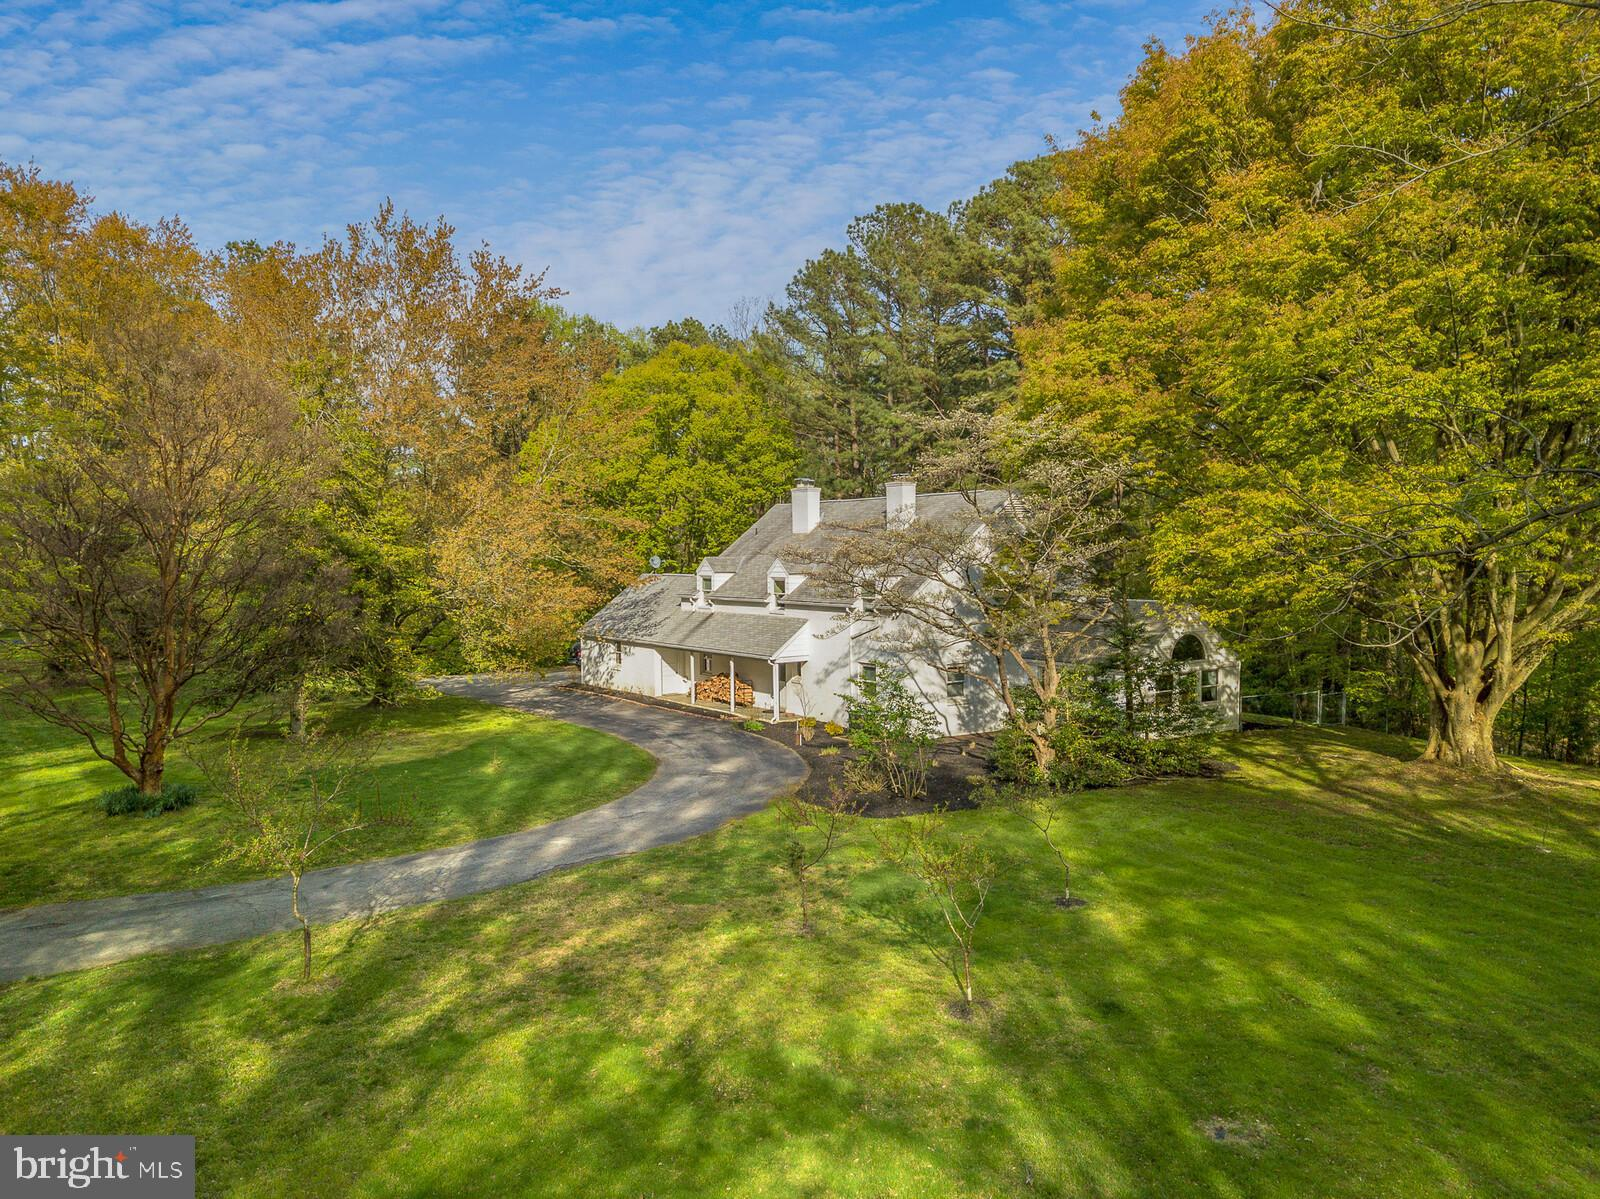 Welcome to 597 Horseshoe Hill Road. This traditional home is situated on an astonishing  10 acres of green hills. There is a walking trail that circles the home, offering a quiet retreat and bucolic views. Part of owning in this neighborhood, means access to the tennis court and even a pond that you may fish in! The pond is a short walk from the house, along the private road. Step inside. This home has a huge living room, perfect for entertaining, replete with hardwood floors that extend through the whole house. The kitchen is has been furnished with granite counter tops and crown molding around the newer cabinets. Recessed lighting has also been installed, highlighting the undermounted sink, textured backsplash, chefs stove and low profile microwave. The windows in the home are top of the line Andersen. Make your way upstairs and you will find three large bedrooms, and two full baths. All bedrooms also have hardwood floors. There is an additional bedroom on the first floor, that is currently used as a study. The full basement offers high ceilings, perfect for finishing, and even a sauna. This unique and charming home is ready for its new owners.